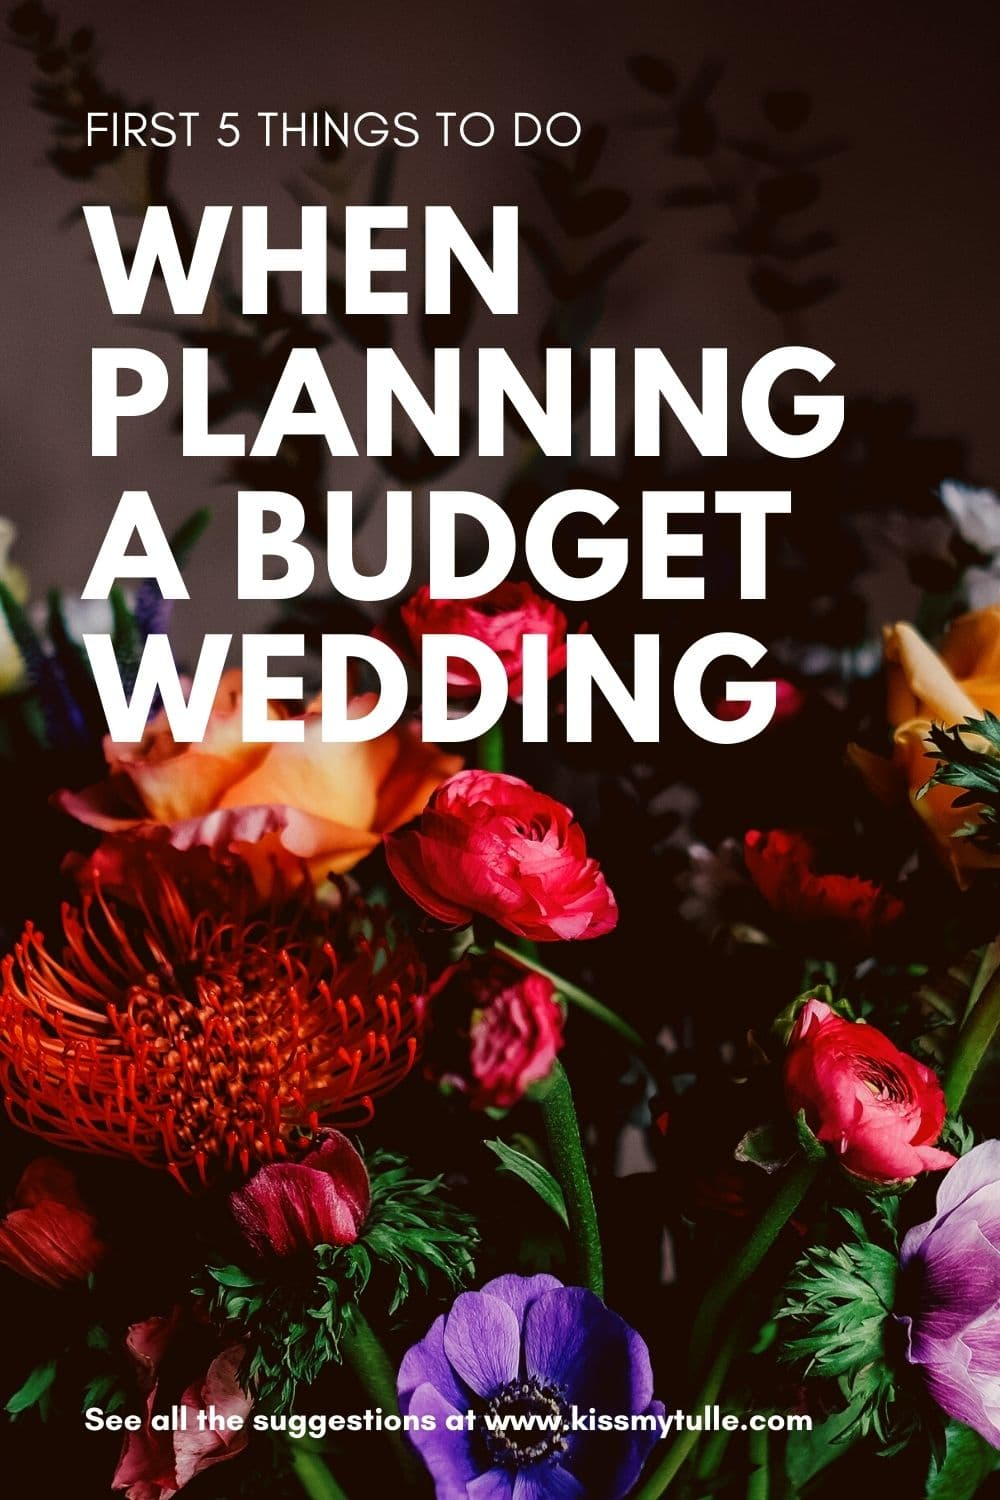 So, you're going to plan a budget wedding. YAY! You're probably so excited to get started and maybe you've already been pinning ideas. But before you get too carried away, let's discuss the first 5 things to do when planning a budget wedding.